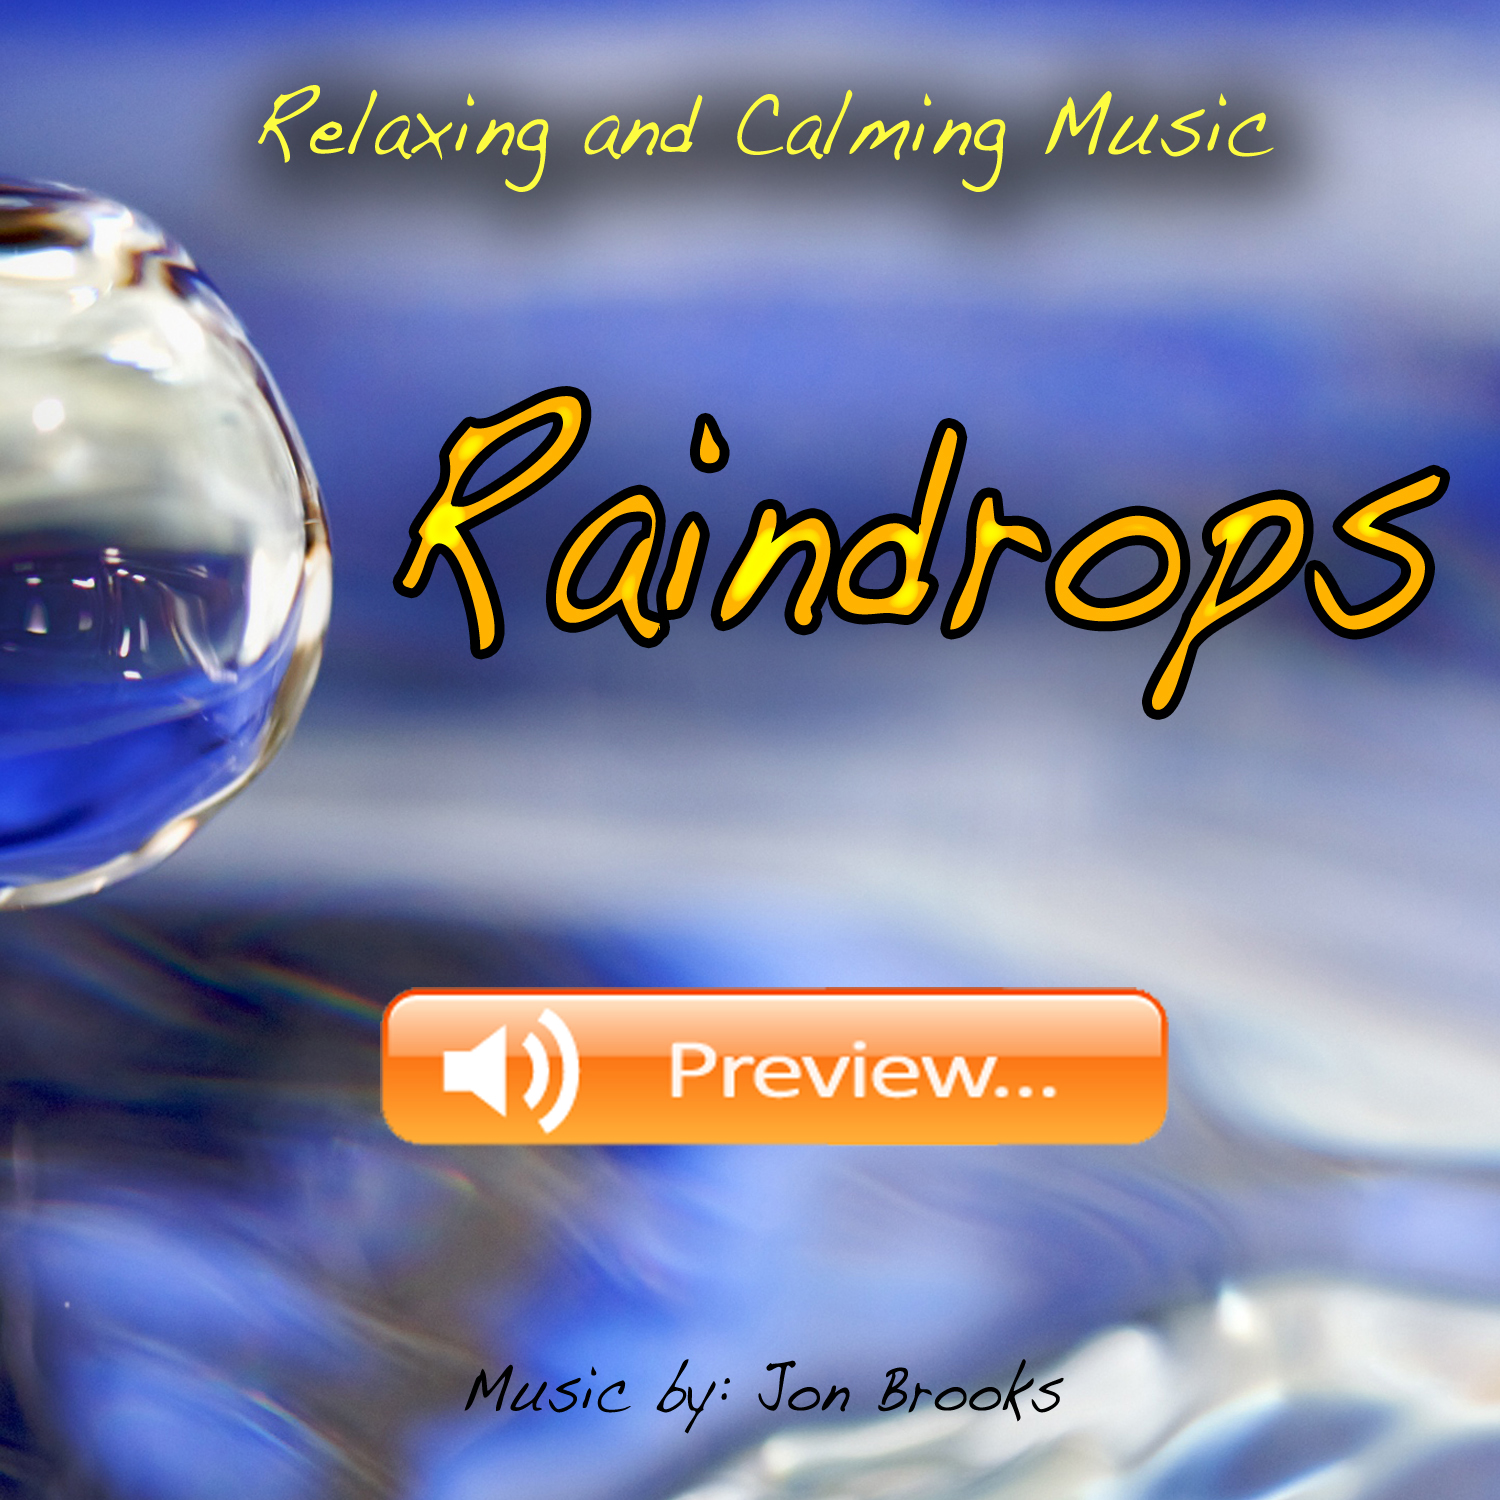 Raindrops Mp3 - Original Music Track By Jon Brooks